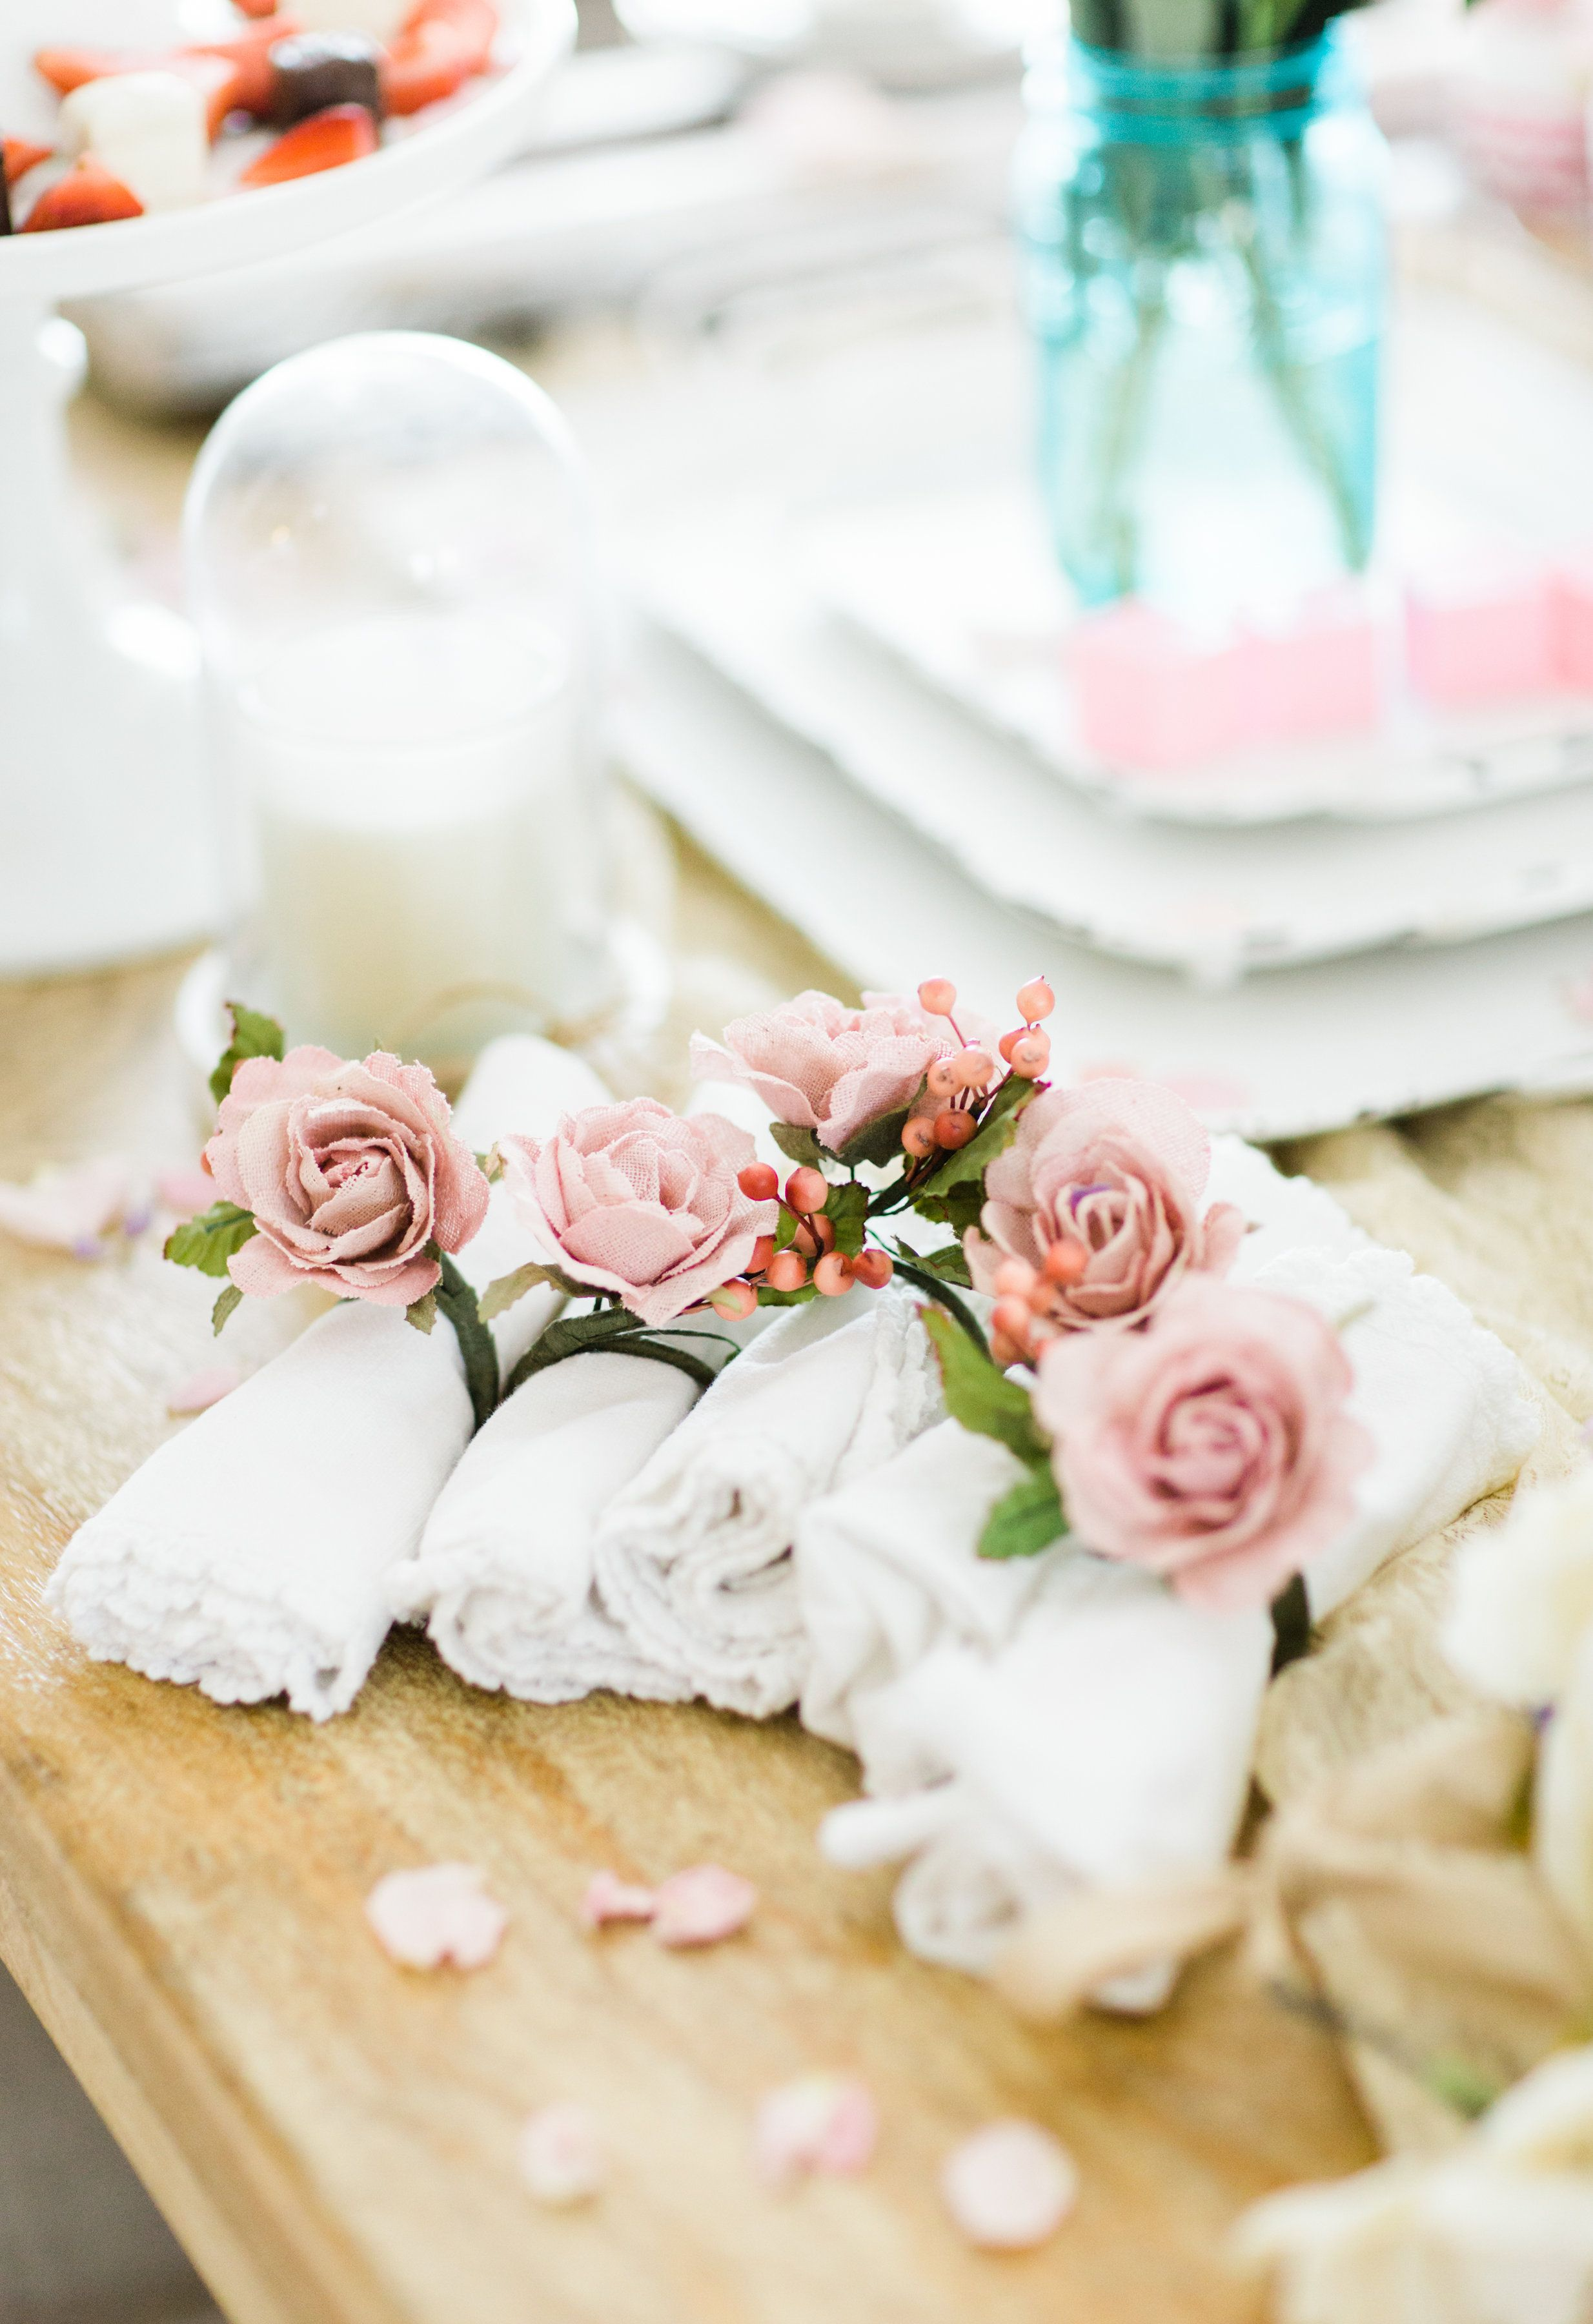 Lifestyle blogger Lexi of Glitter, Inc. shares how to throw a tea party  baby shower in 6 easy steps; plus a DIY diaper cake using cupcake liners!